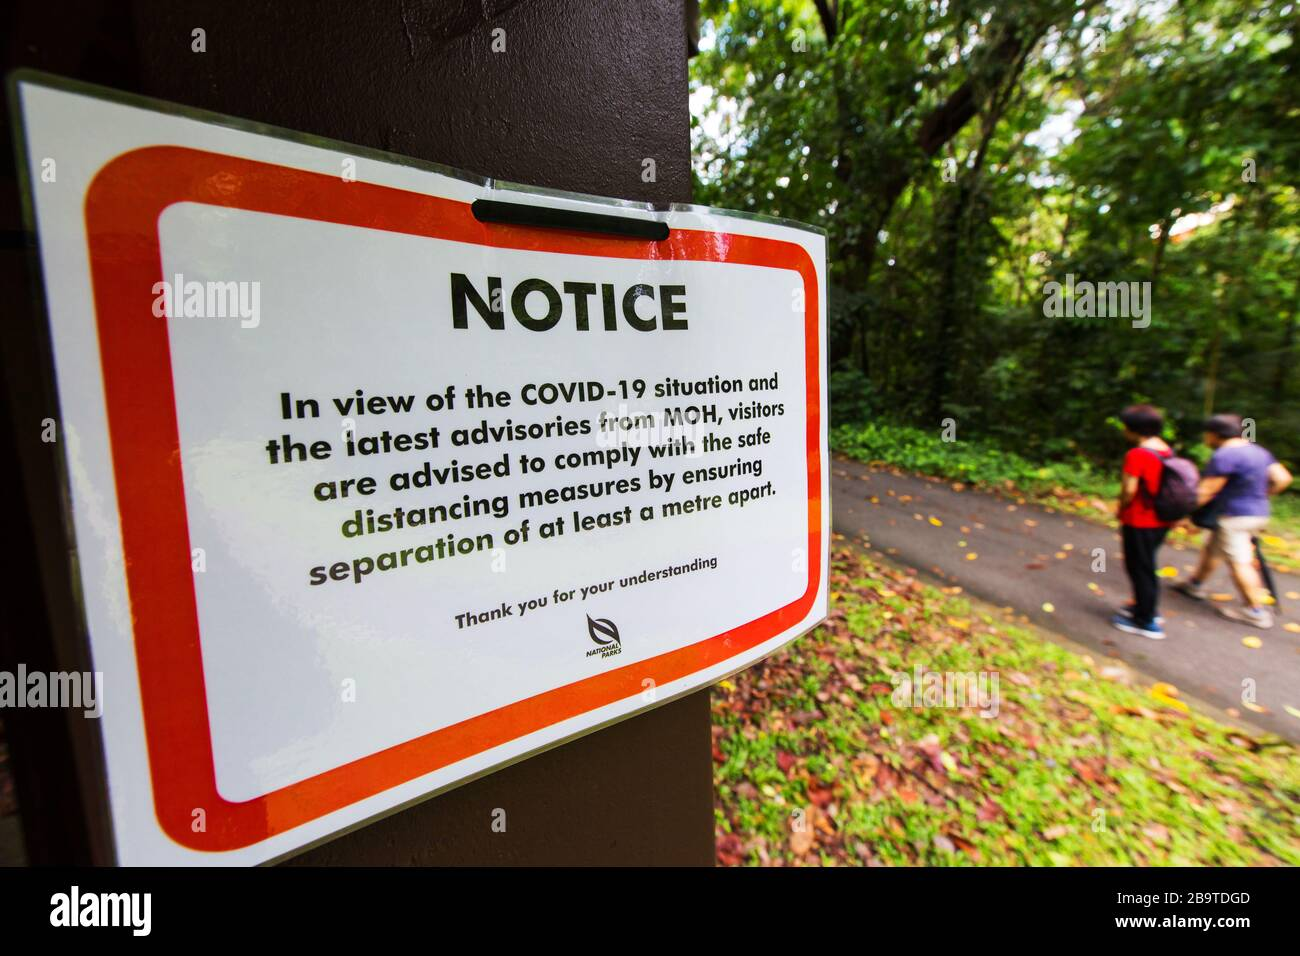 a-notice-sign-to-remind-the-public-of-th